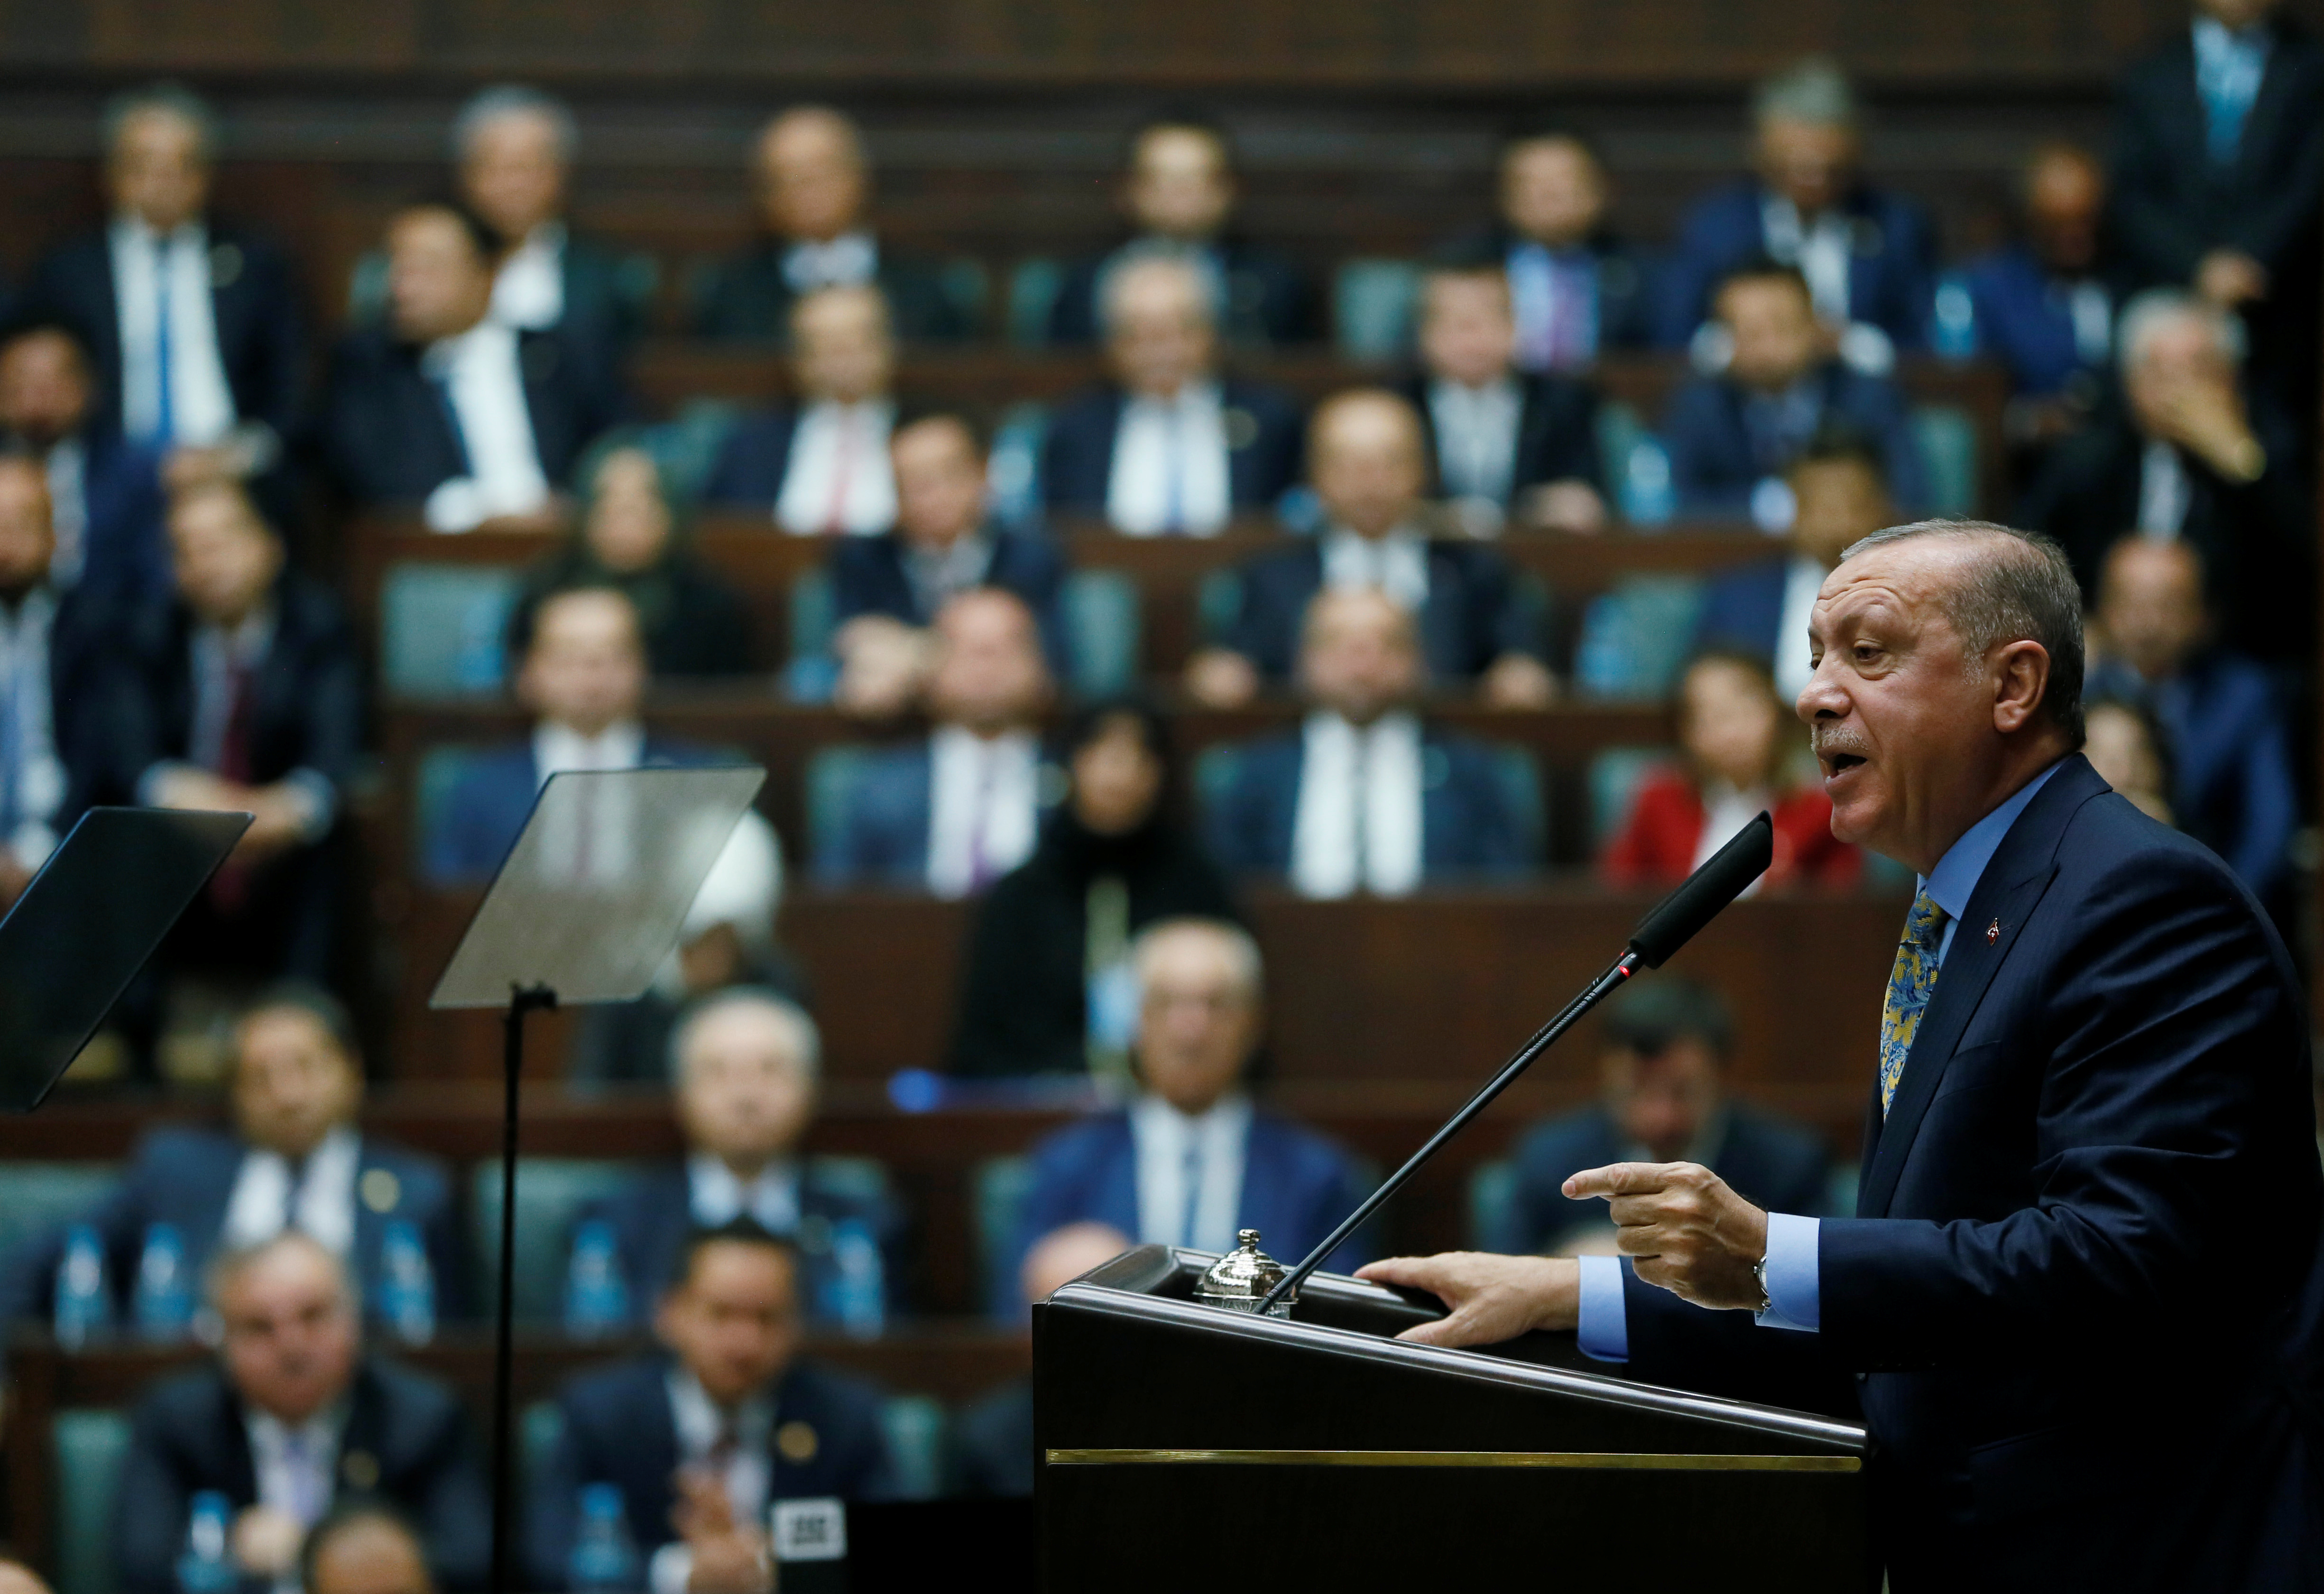 Turkish President Tayyip Erdogan addresses members of parliament from his ruling AK Party (AKP) during a meeting at the Turkish parliament in Ankara, Oct. 23, 2018. (Presidential Press Office via Reuters)